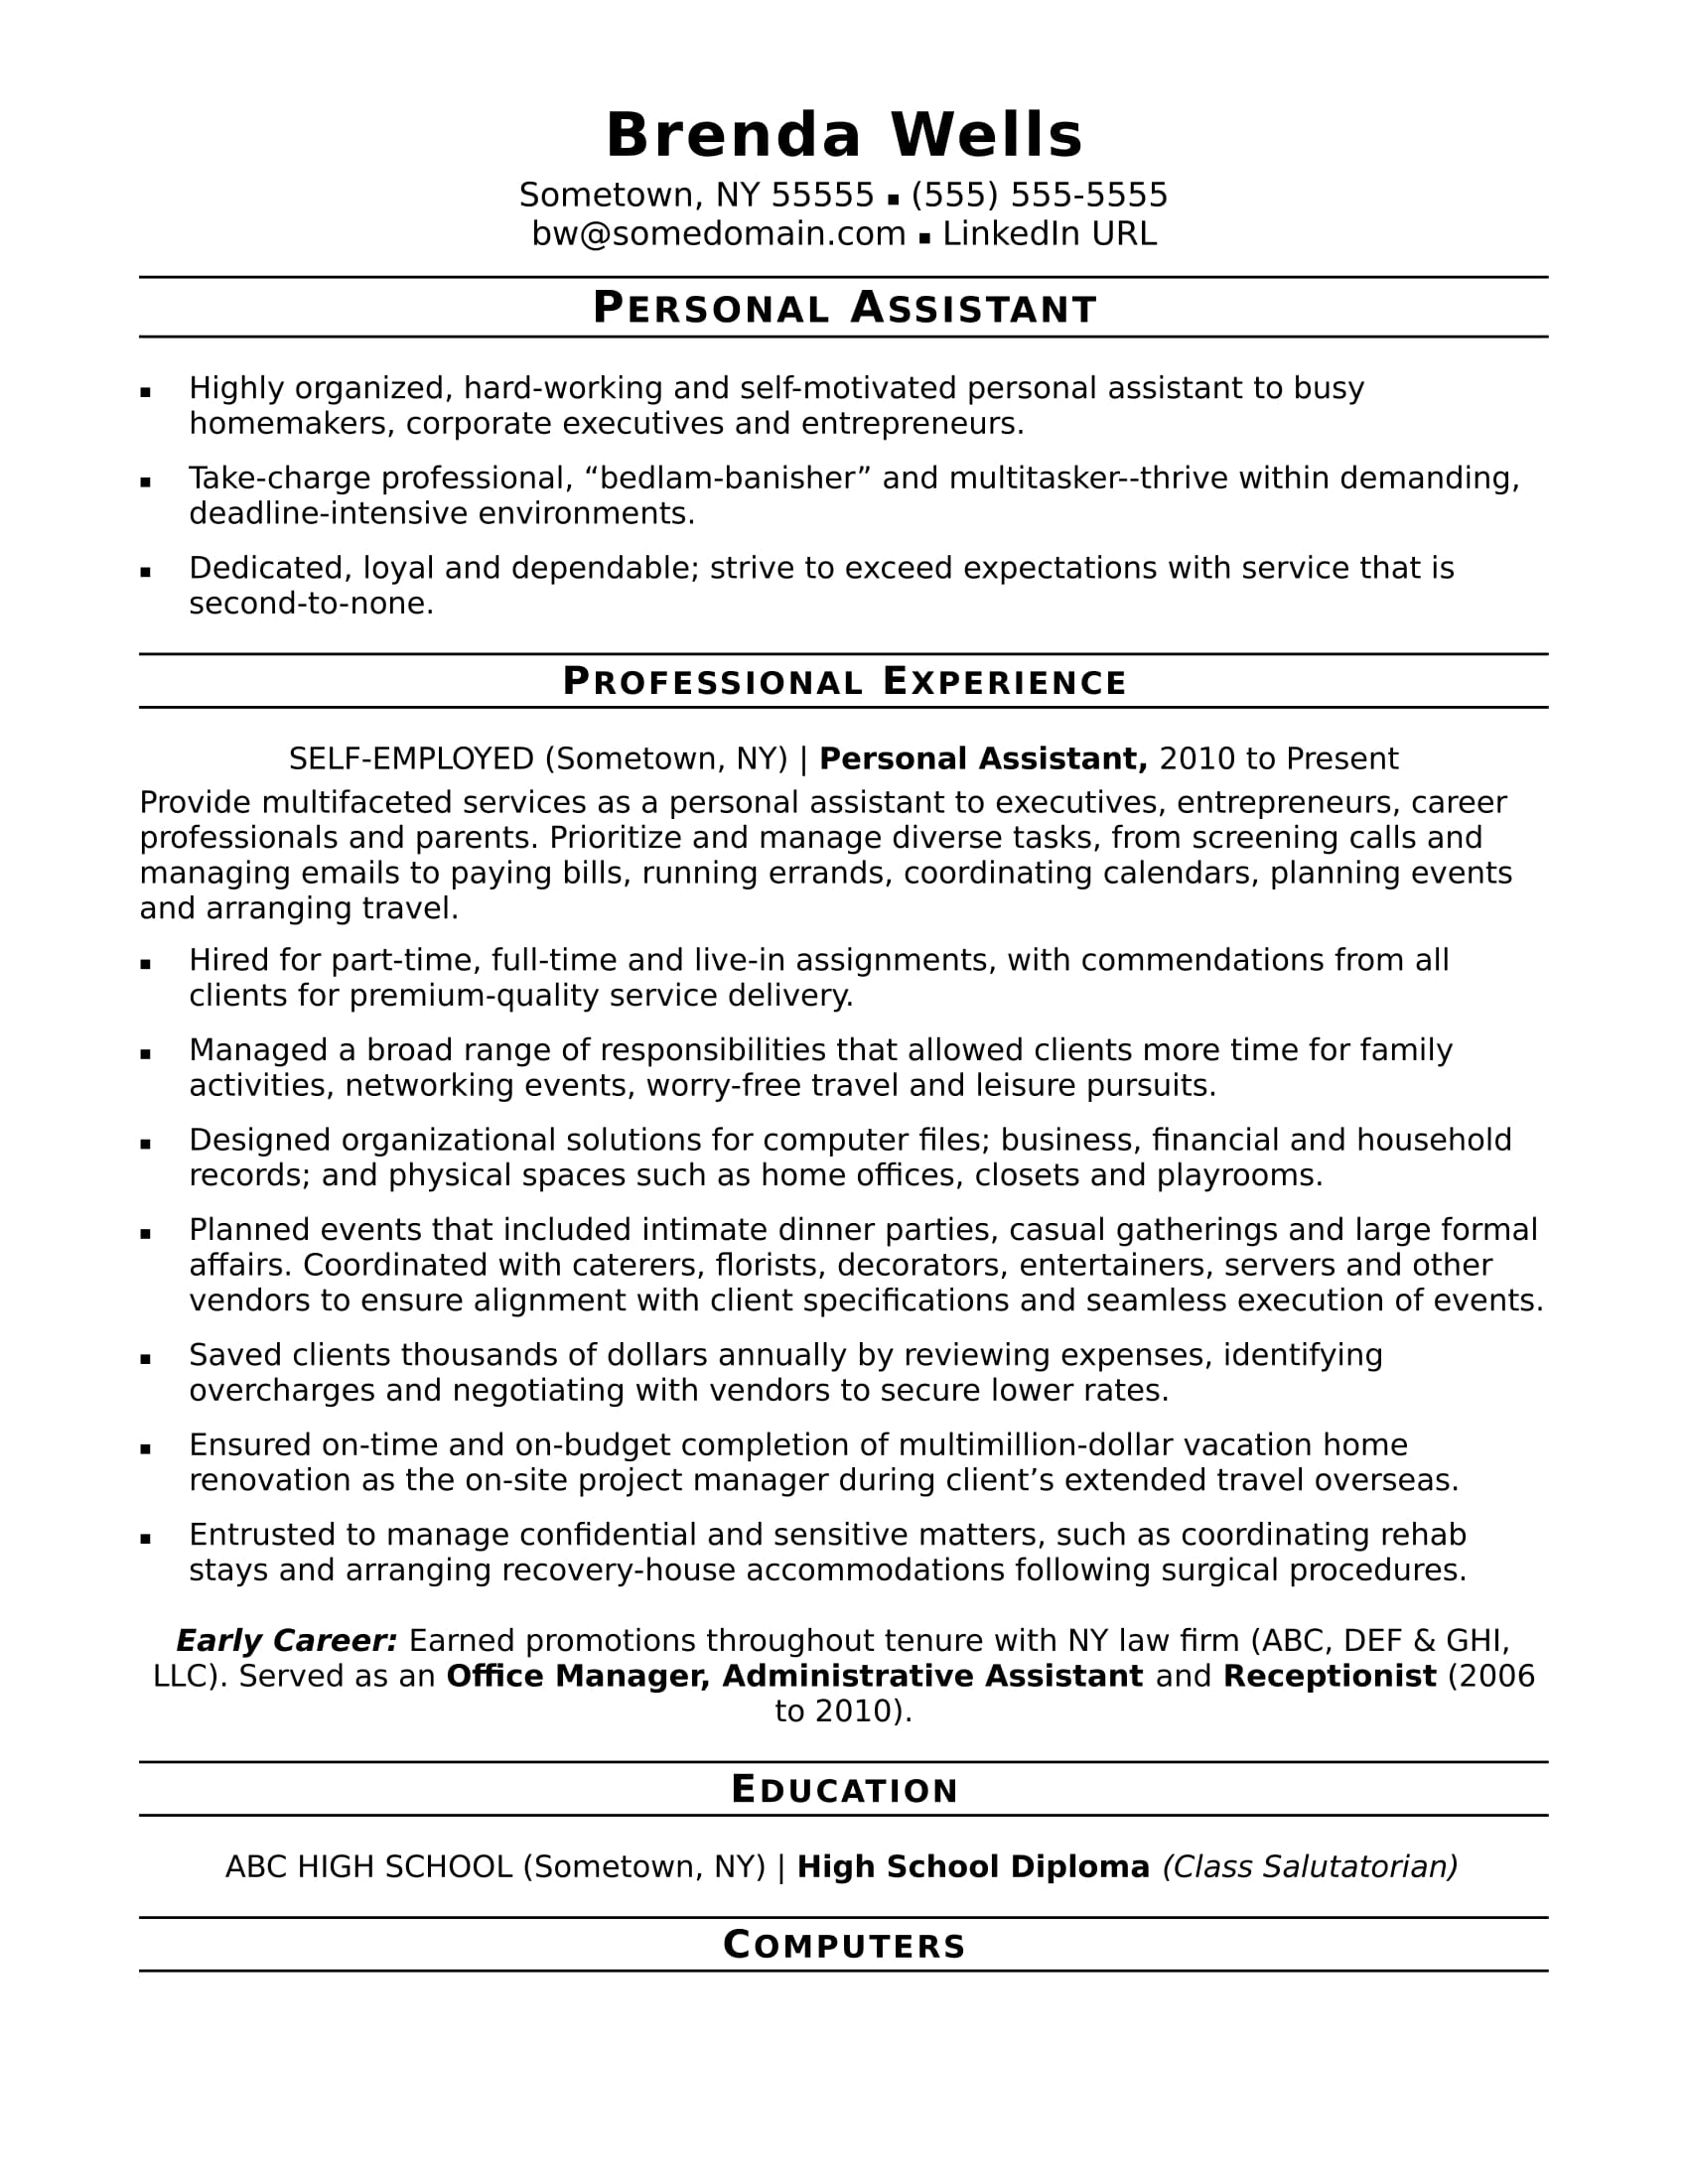 personal assistant resume sample monster with promotions within the same company panera Resume Resume With Promotions Within The Same Company